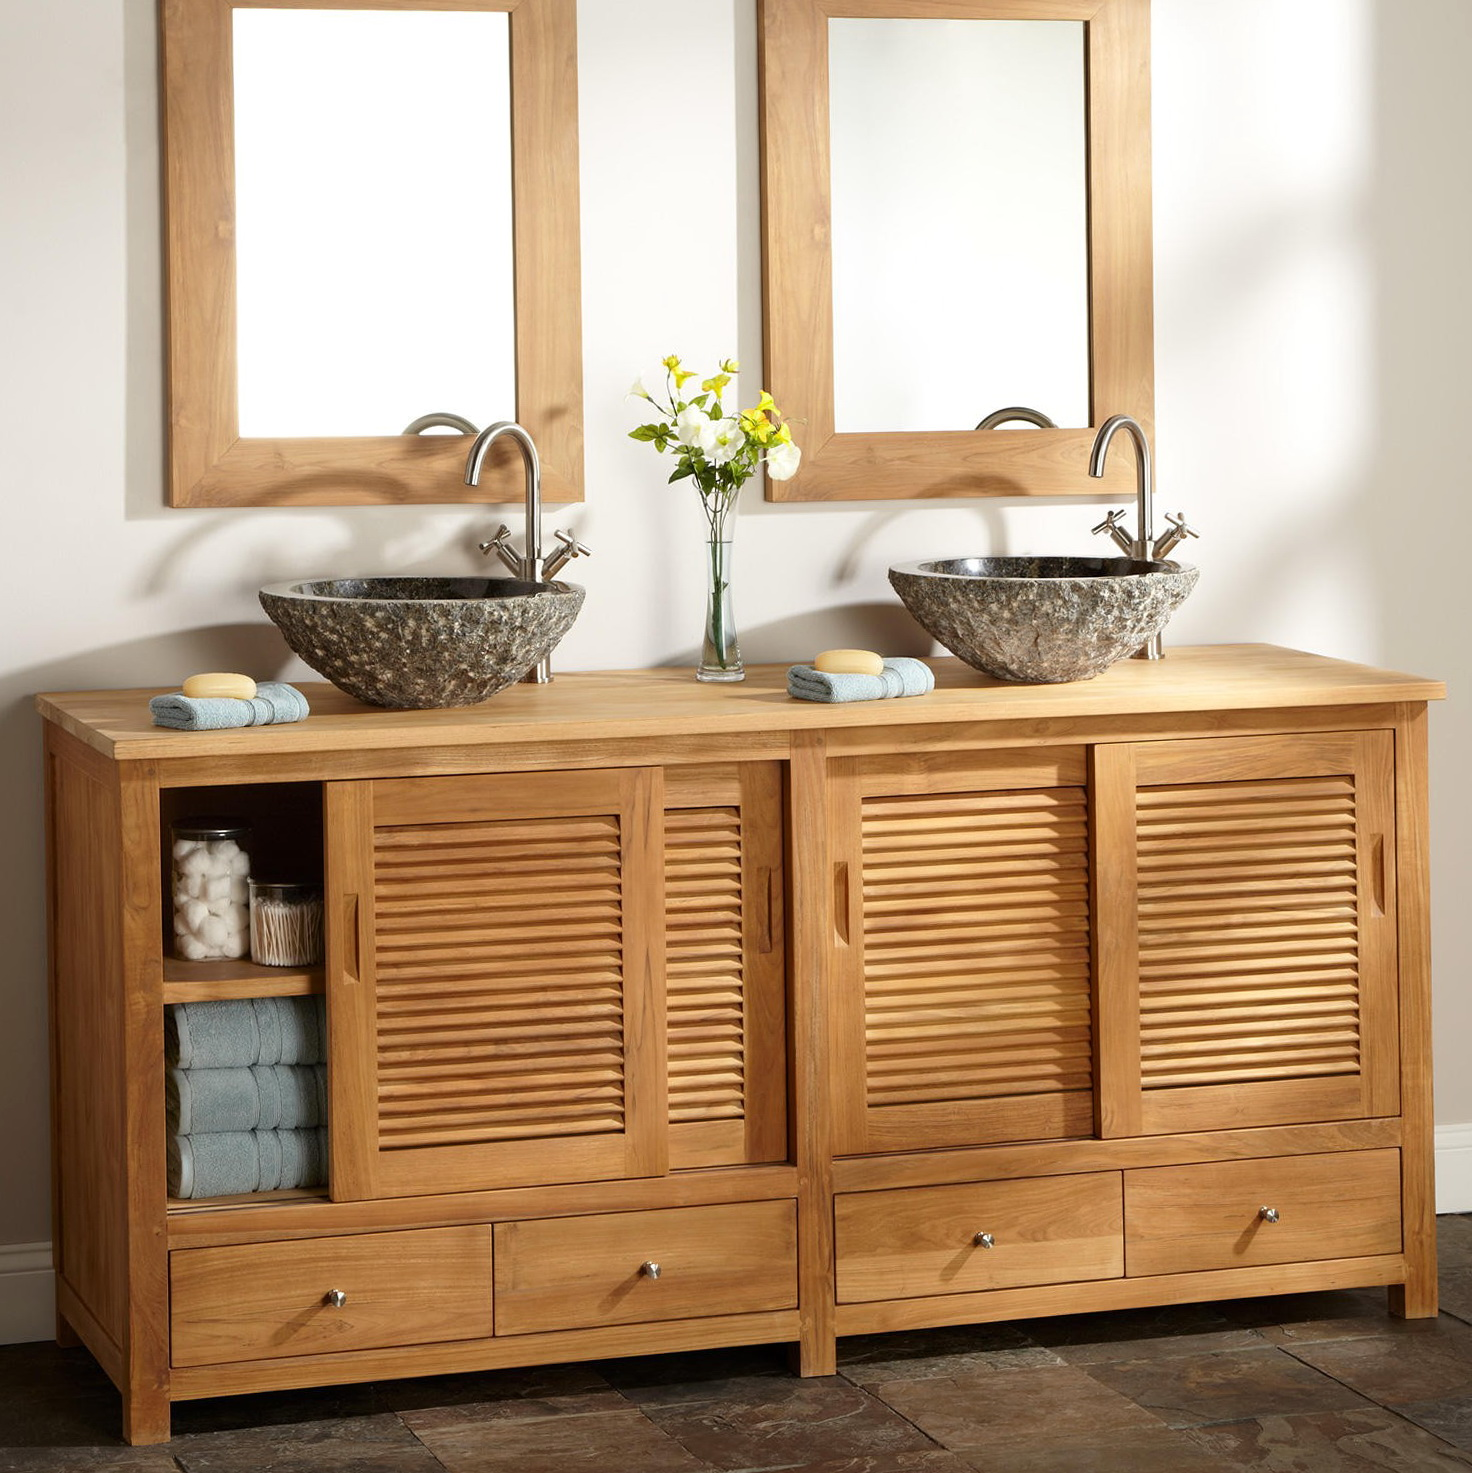 Double Vanity With Bowl Sinks